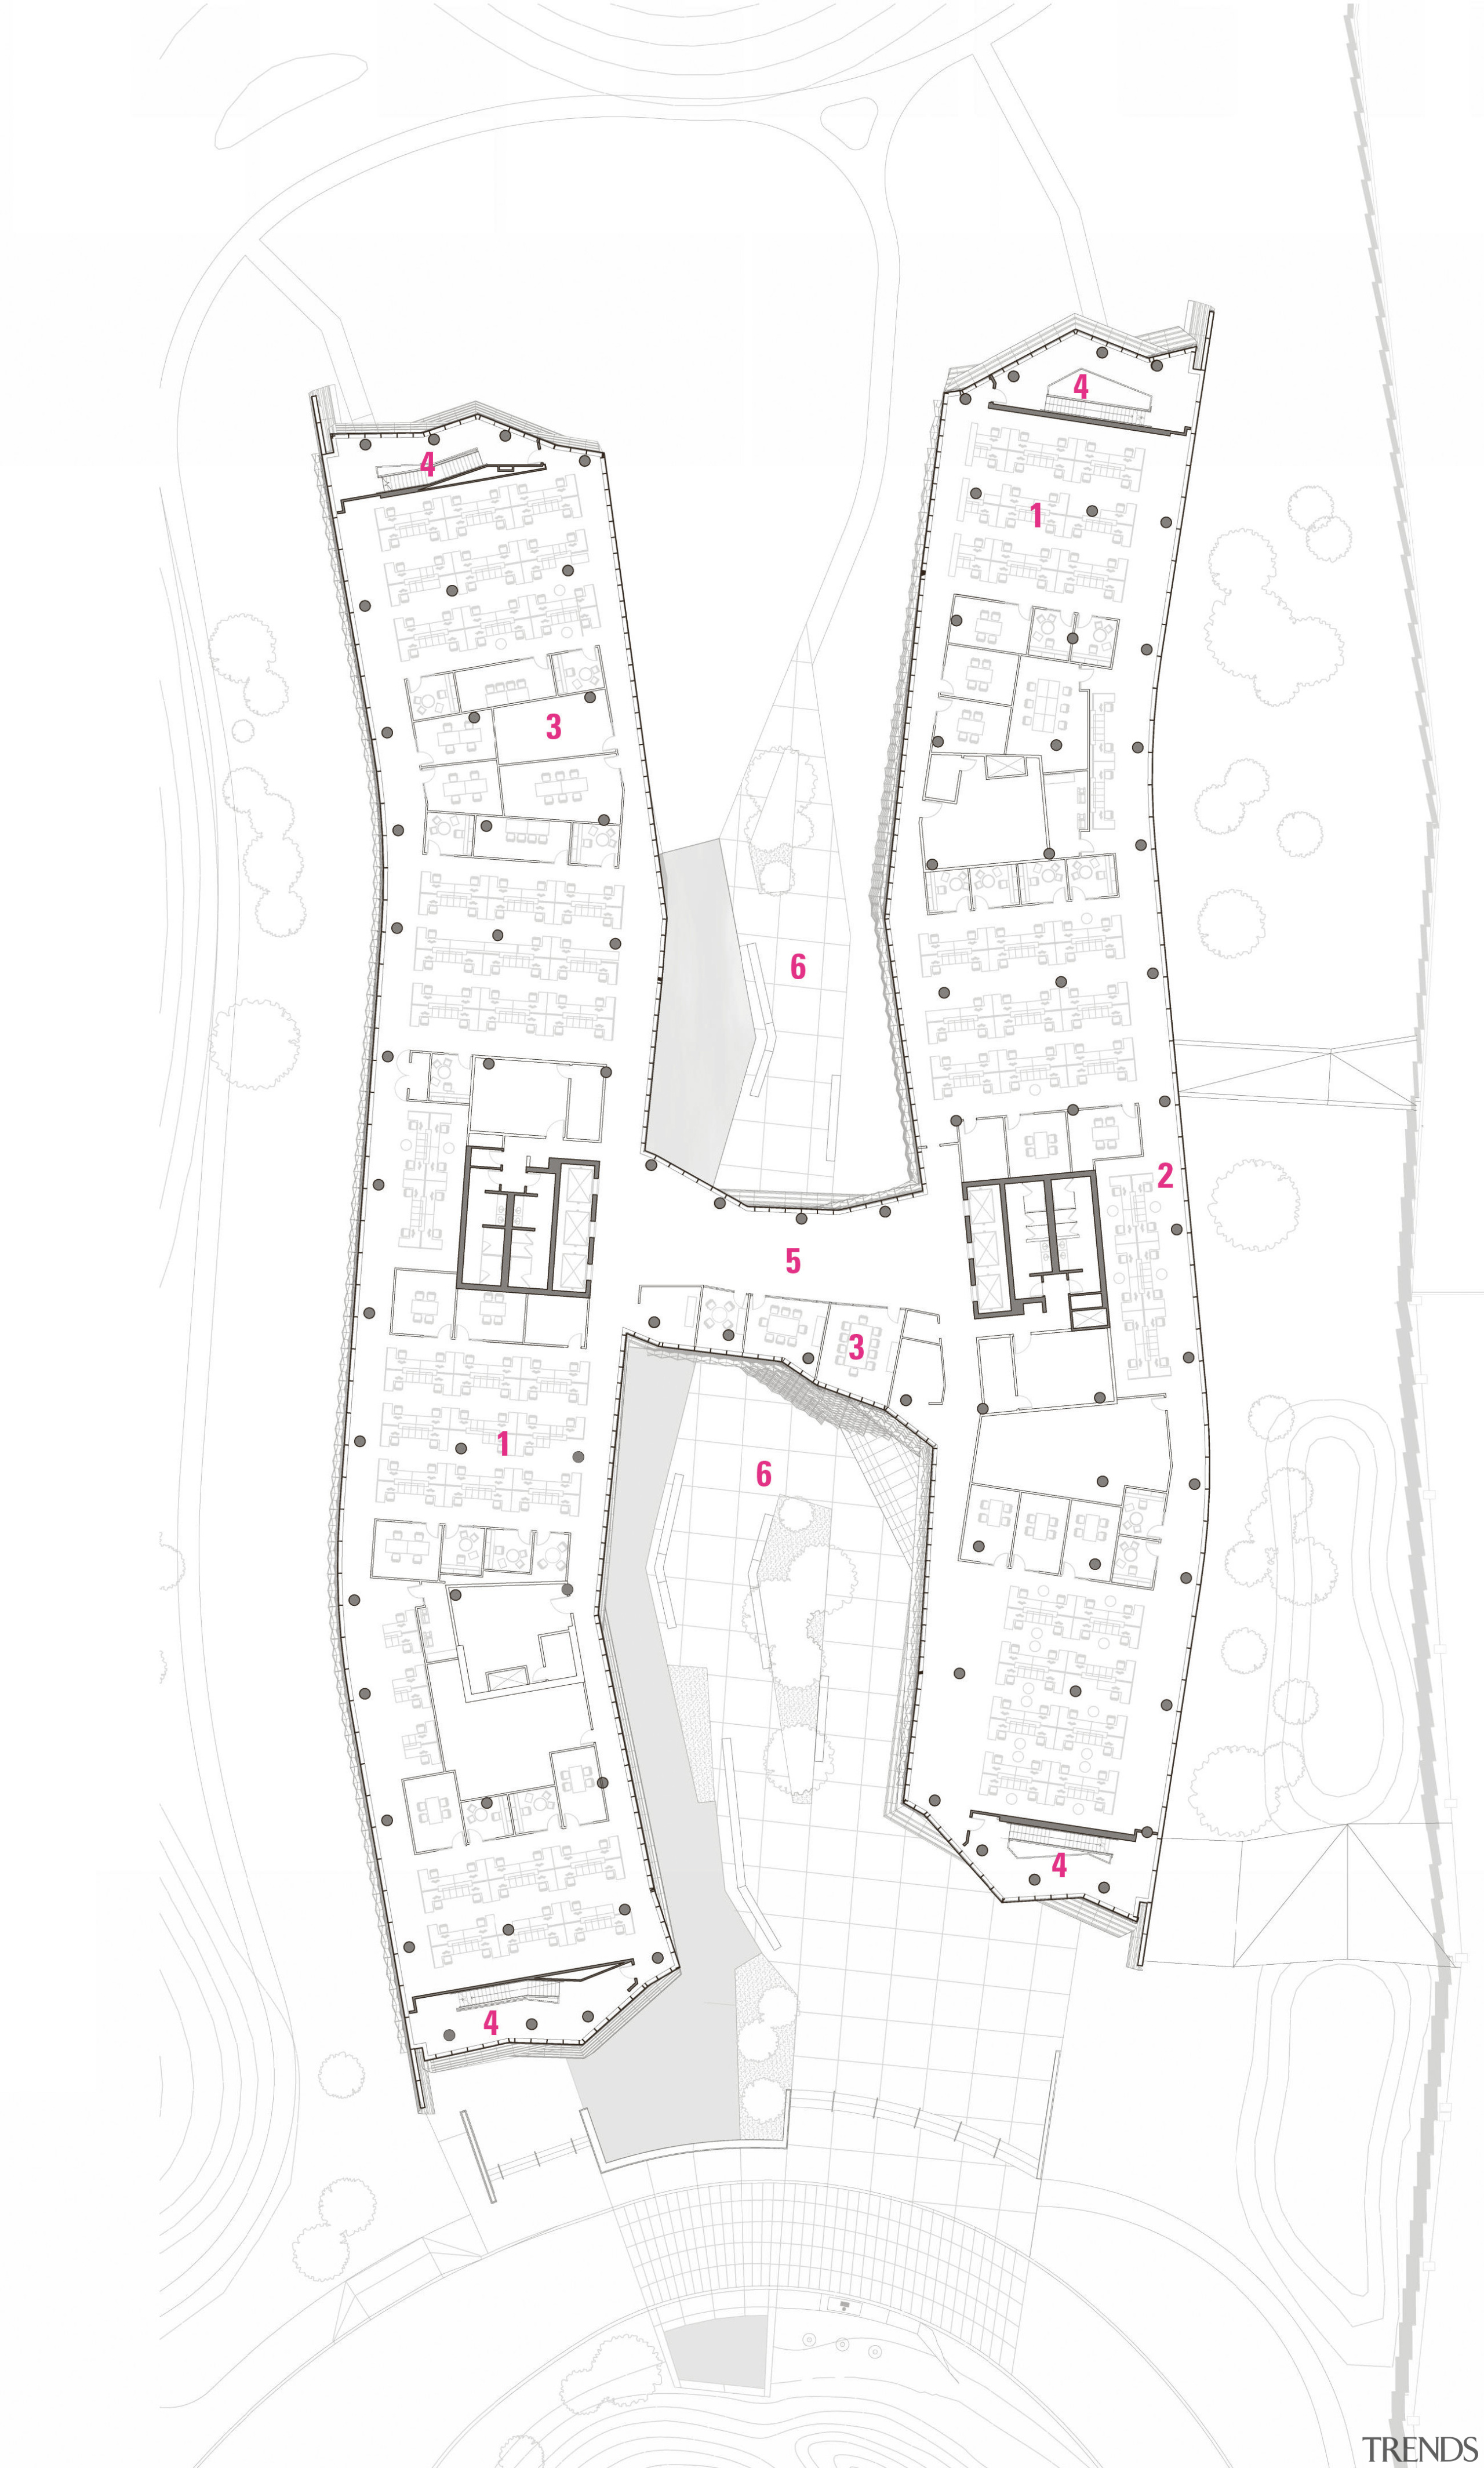 Plan of the FBIs new building in Florida, area, design, drawing, floor plan, font, line, pattern, plan, product, product design, white